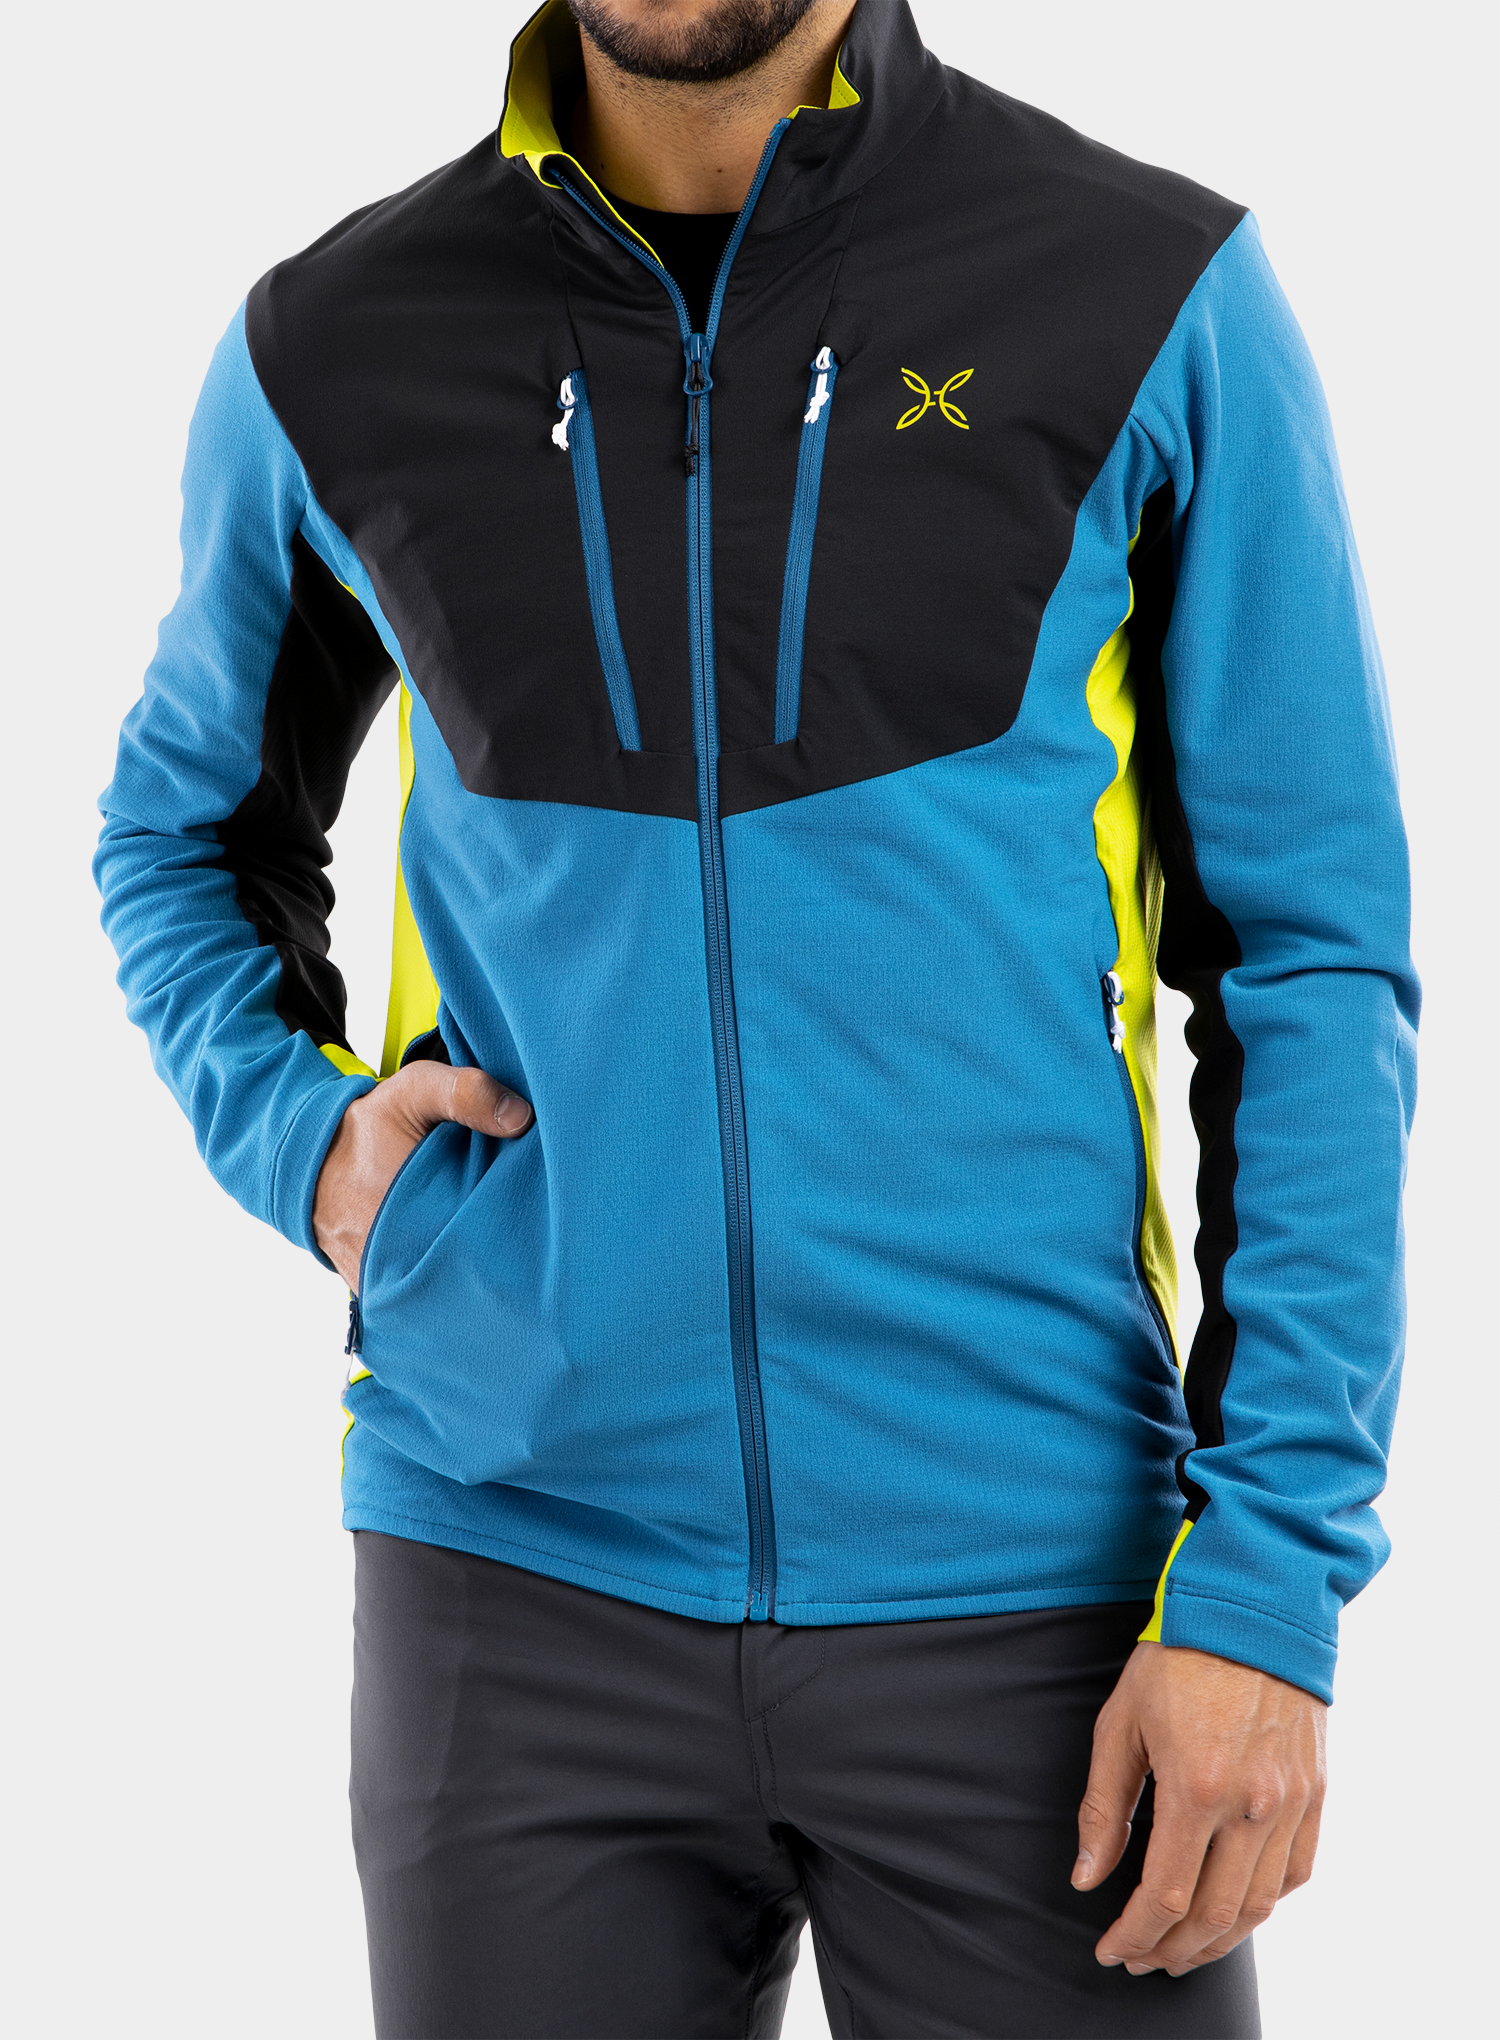 Bluza Montura Stretch Pro 2.0 Jacket - teal blue/lime green - zdjęcie nr. 3